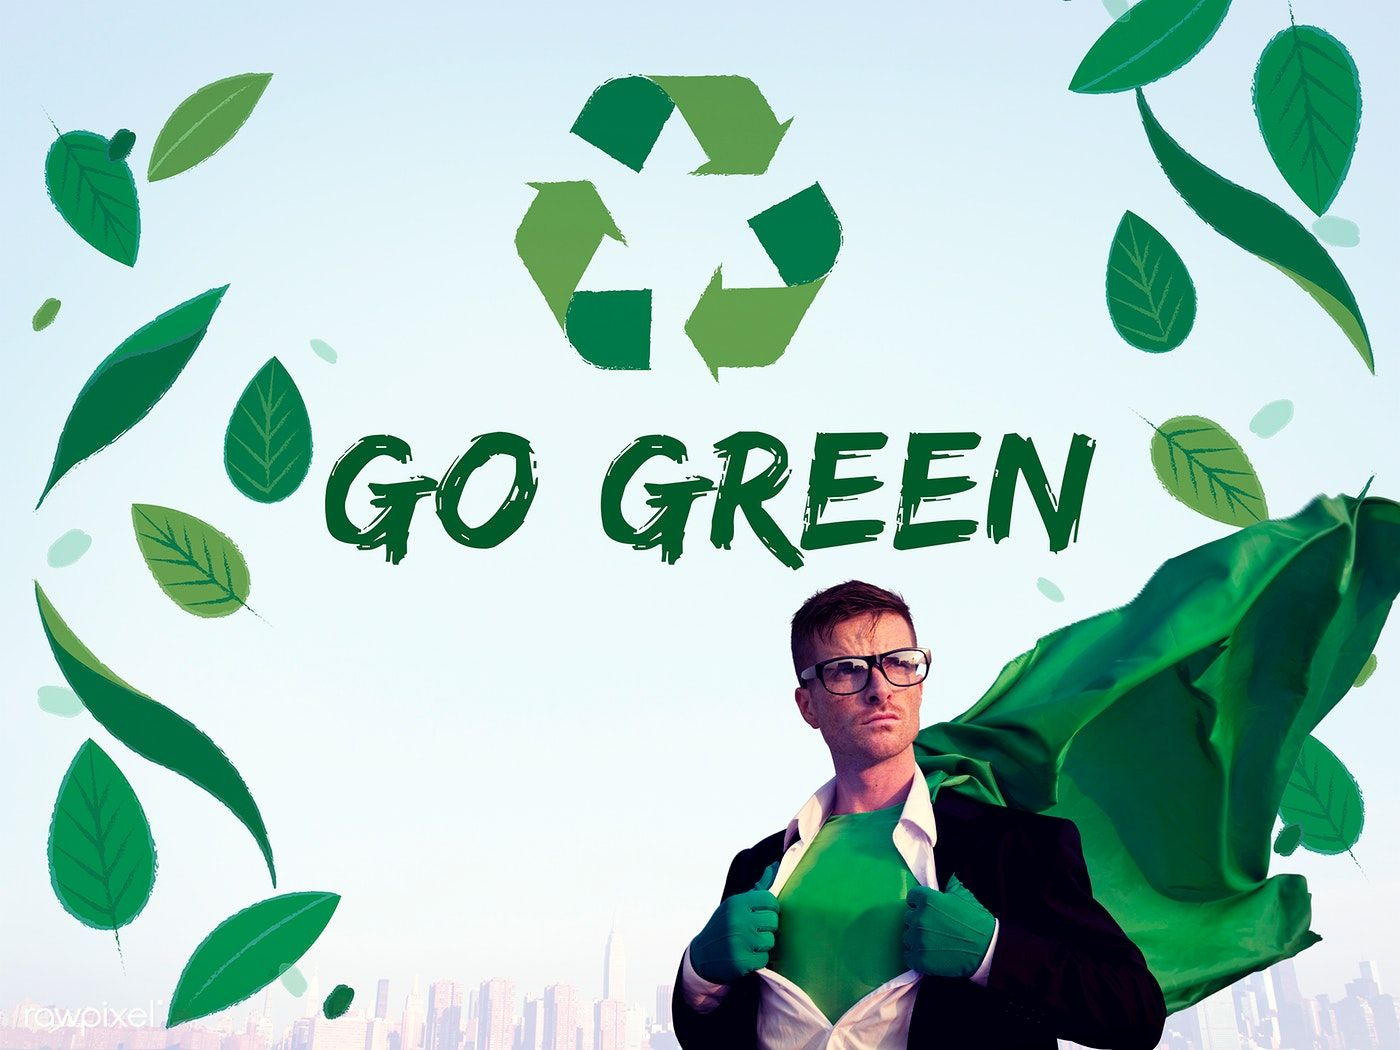 Organic Environment Save Earth Icon free image by